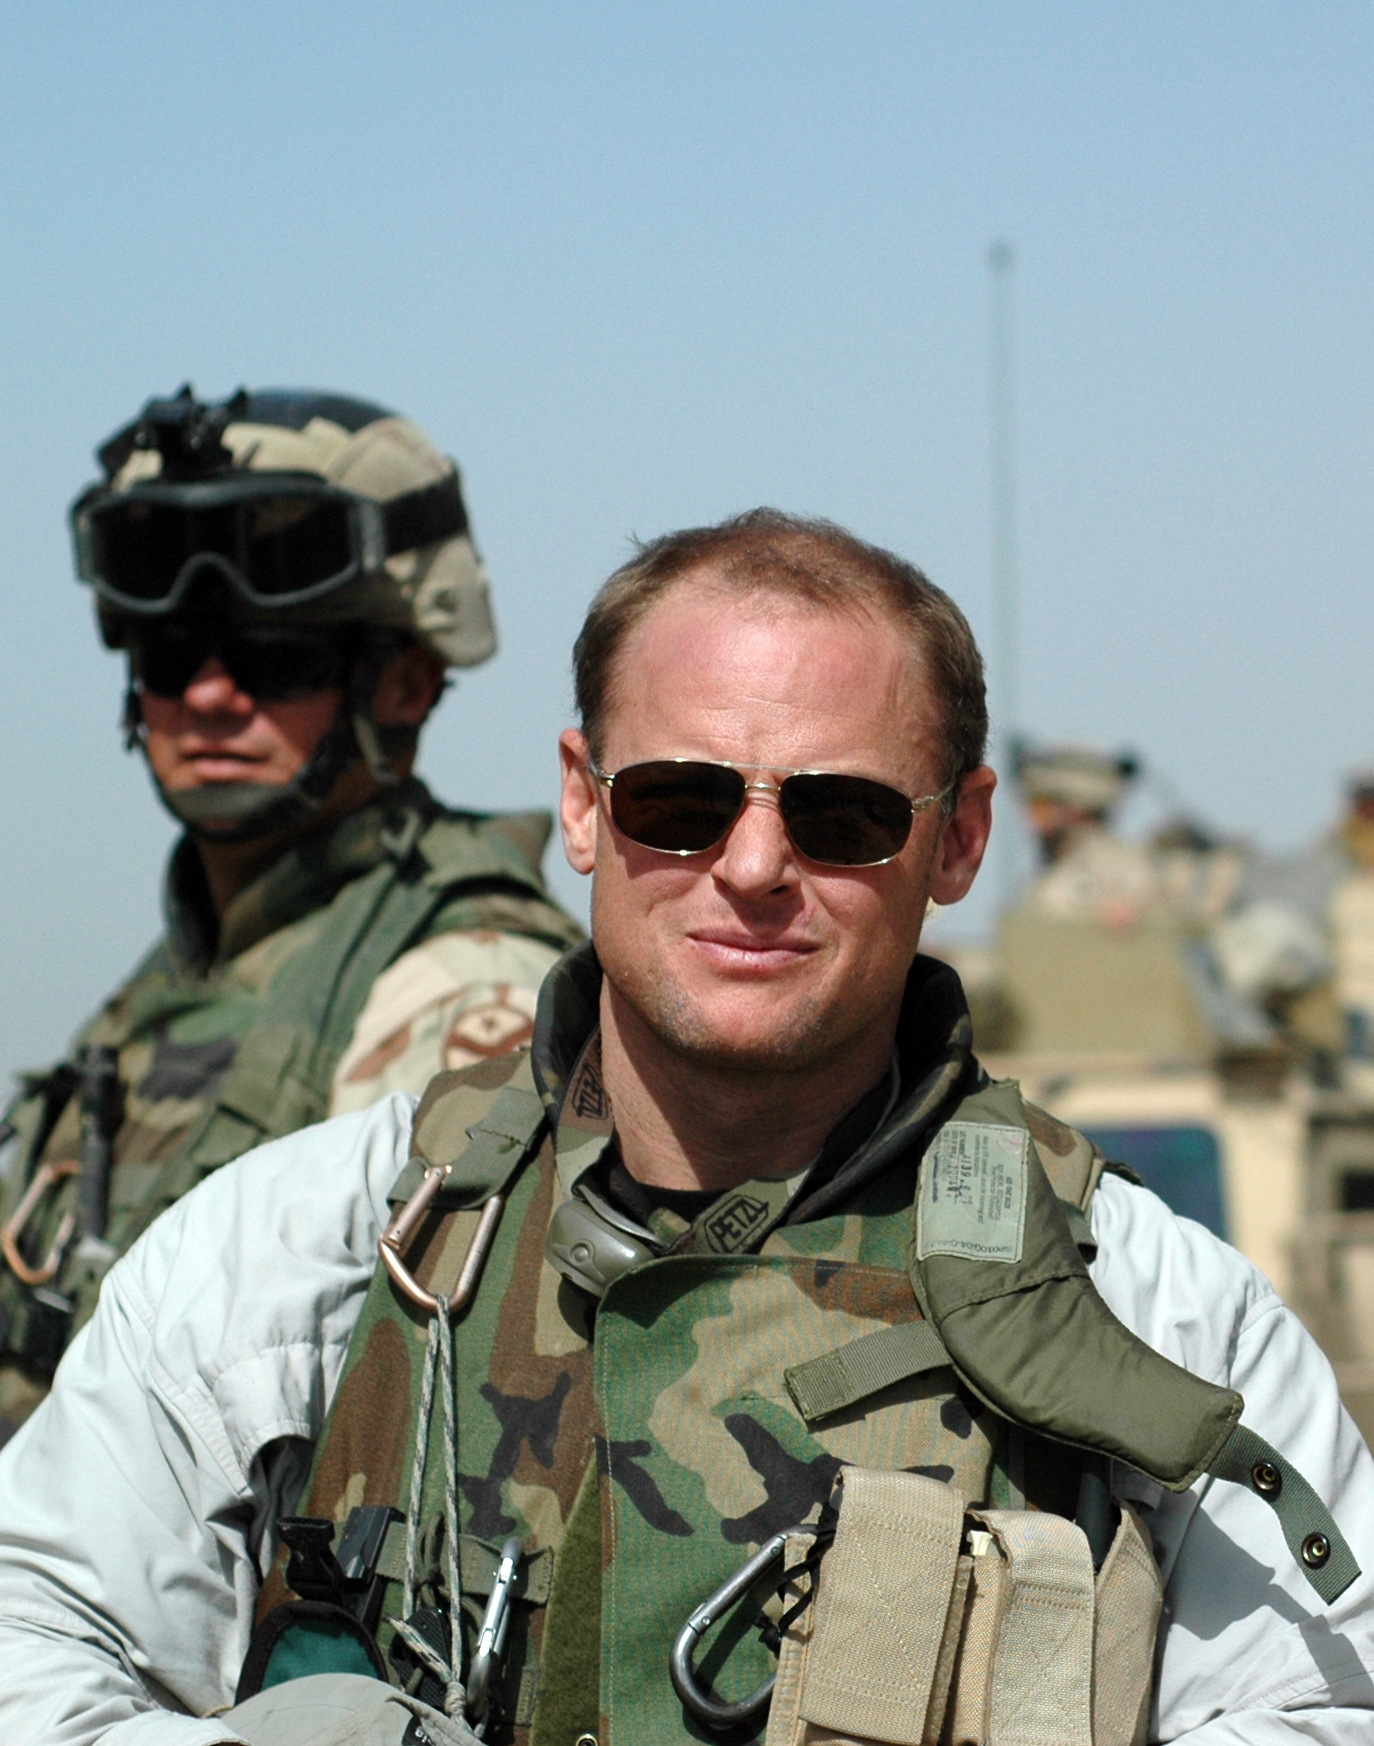 http://upload.wikimedia.org/wikipedia/commons/a/aa/Michael_Yon_in_Iraq.JPG